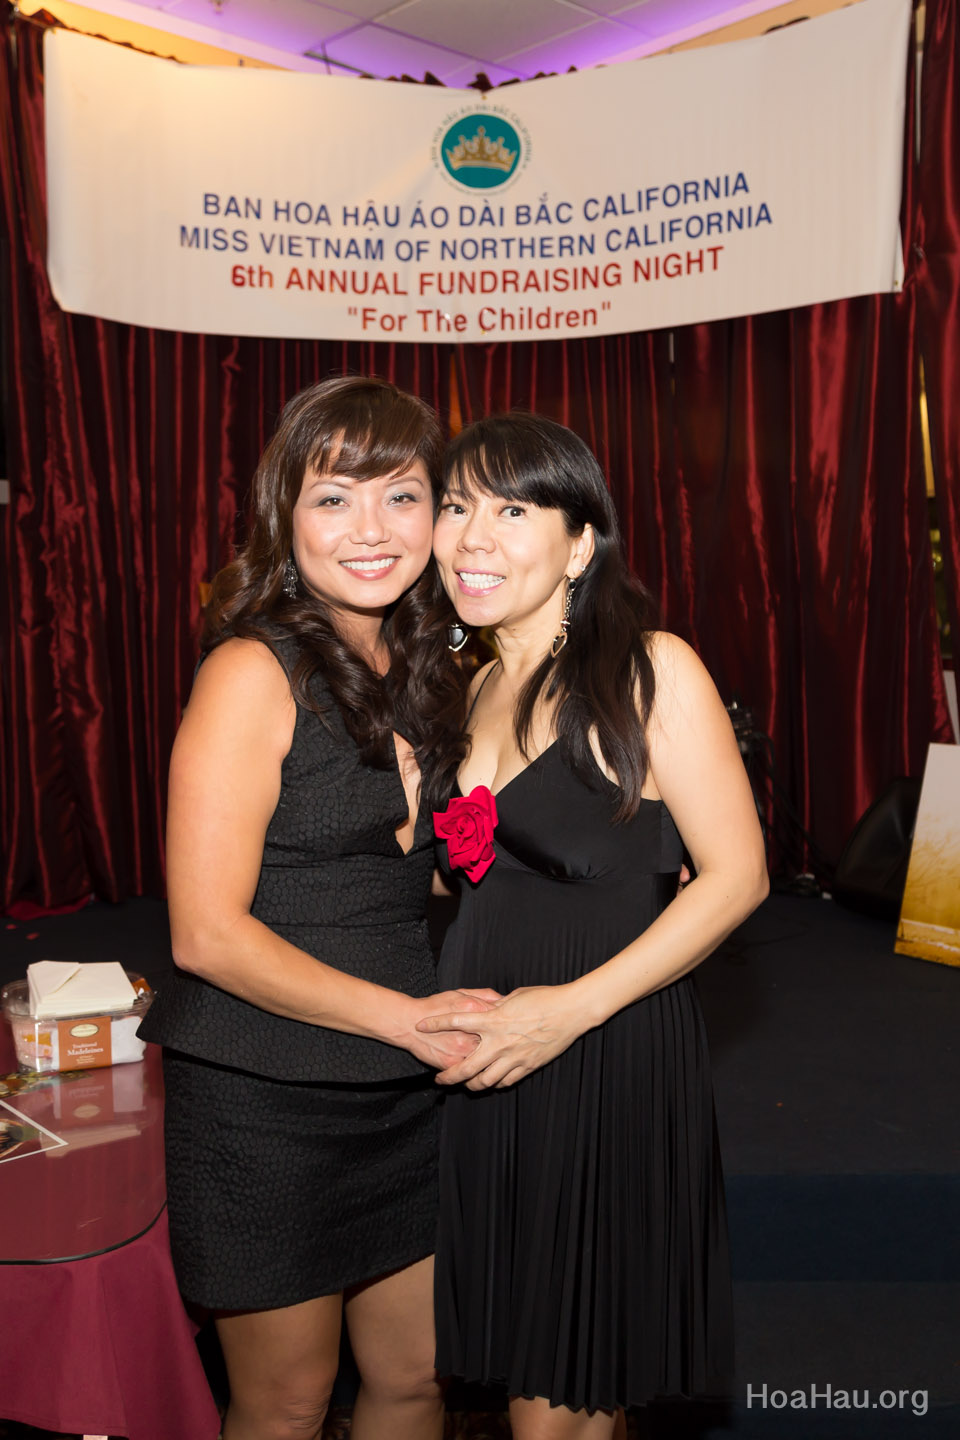 Charity Fundraiser - For the Children 2013 - Paloma, San Jose, CA - Image 42